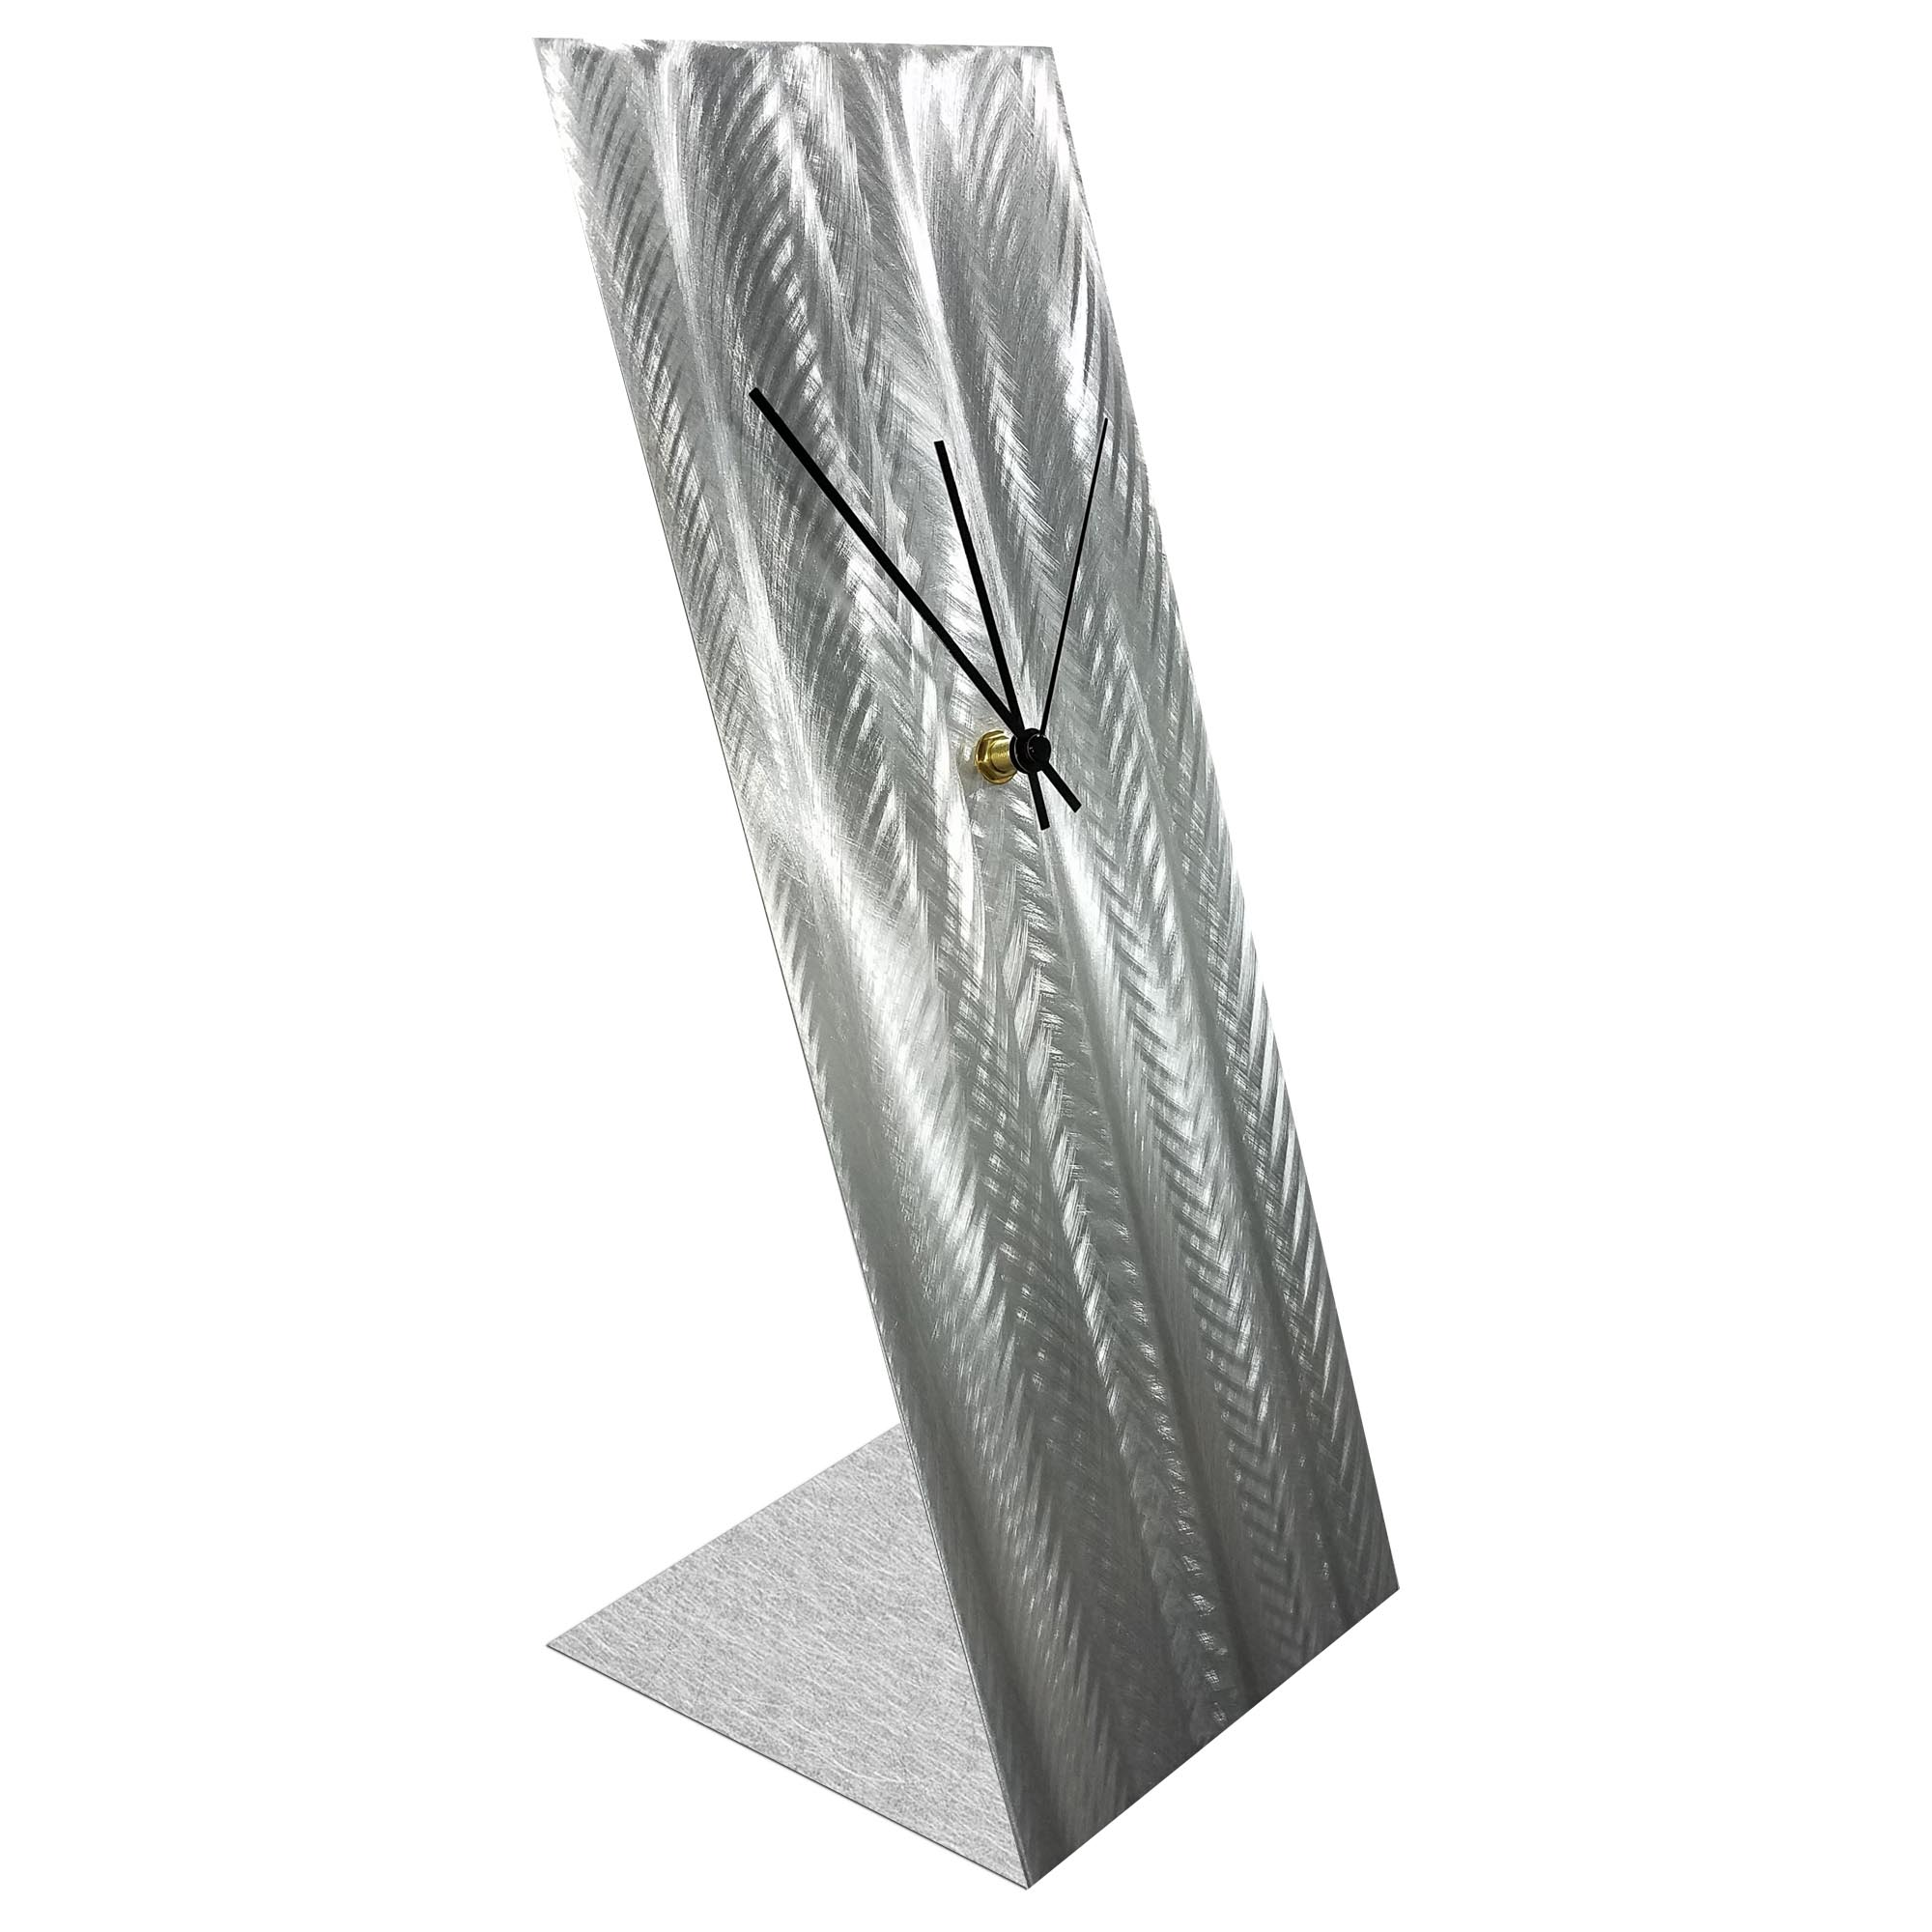 Silver Lines Desk Clock by Helena Martin Modern Table Clock on Natural Aluminum - Image 2